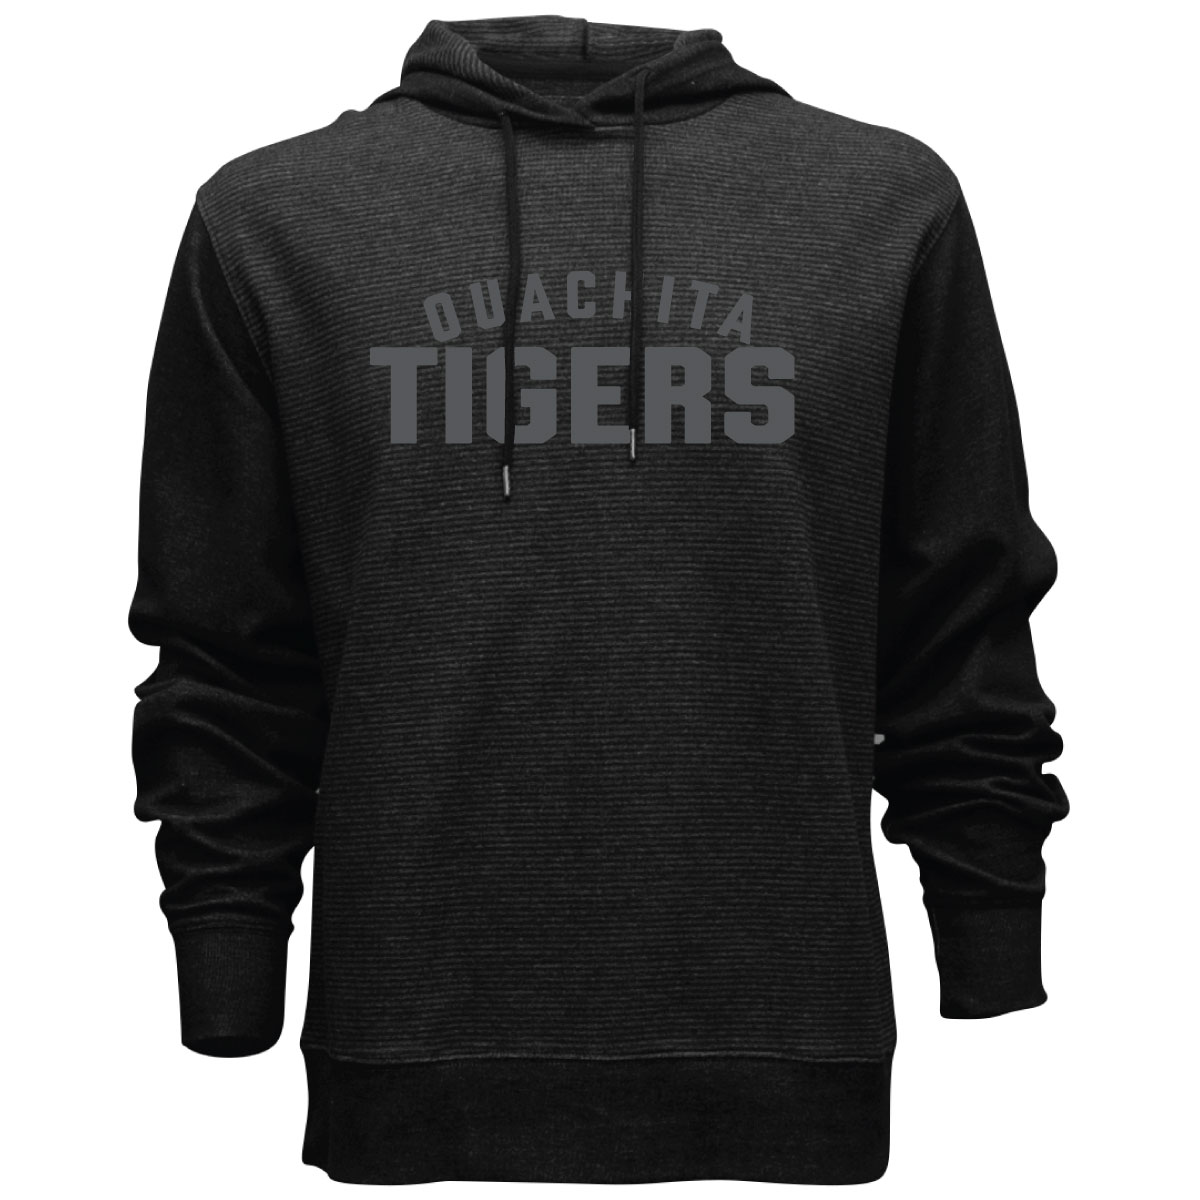 OUACHITA TIGERS HOODY